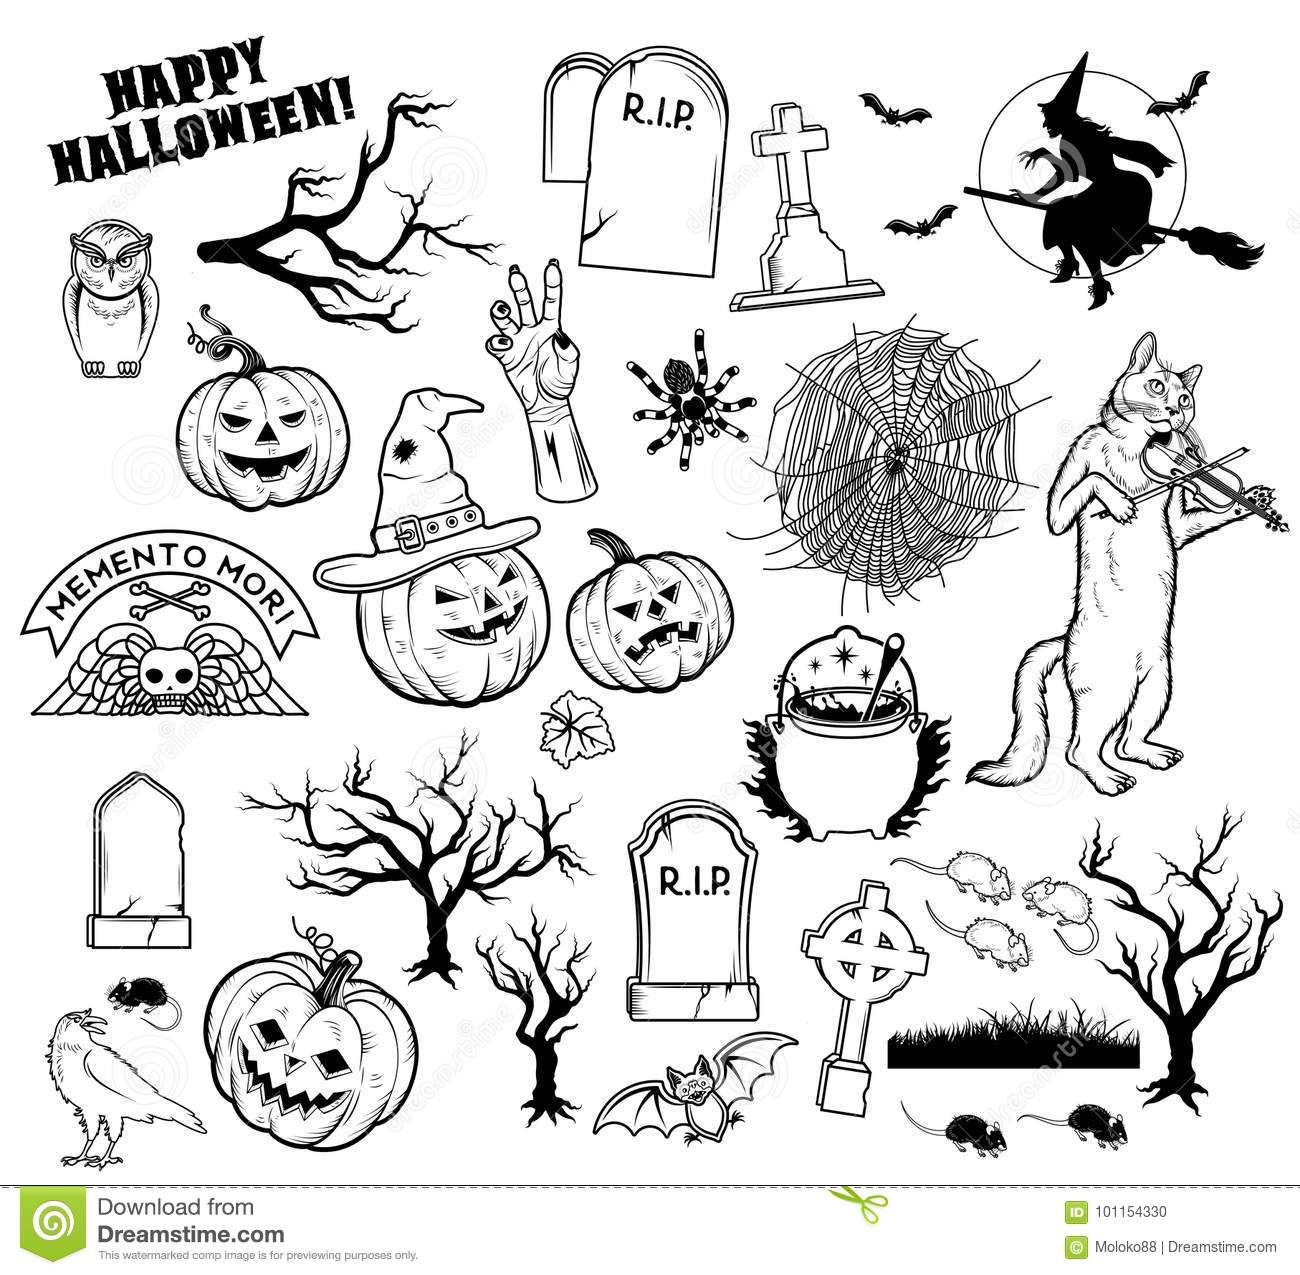 caract res de halloween de livre de coloriage illustration de vecteur illustration de vecteur. Black Bedroom Furniture Sets. Home Design Ideas